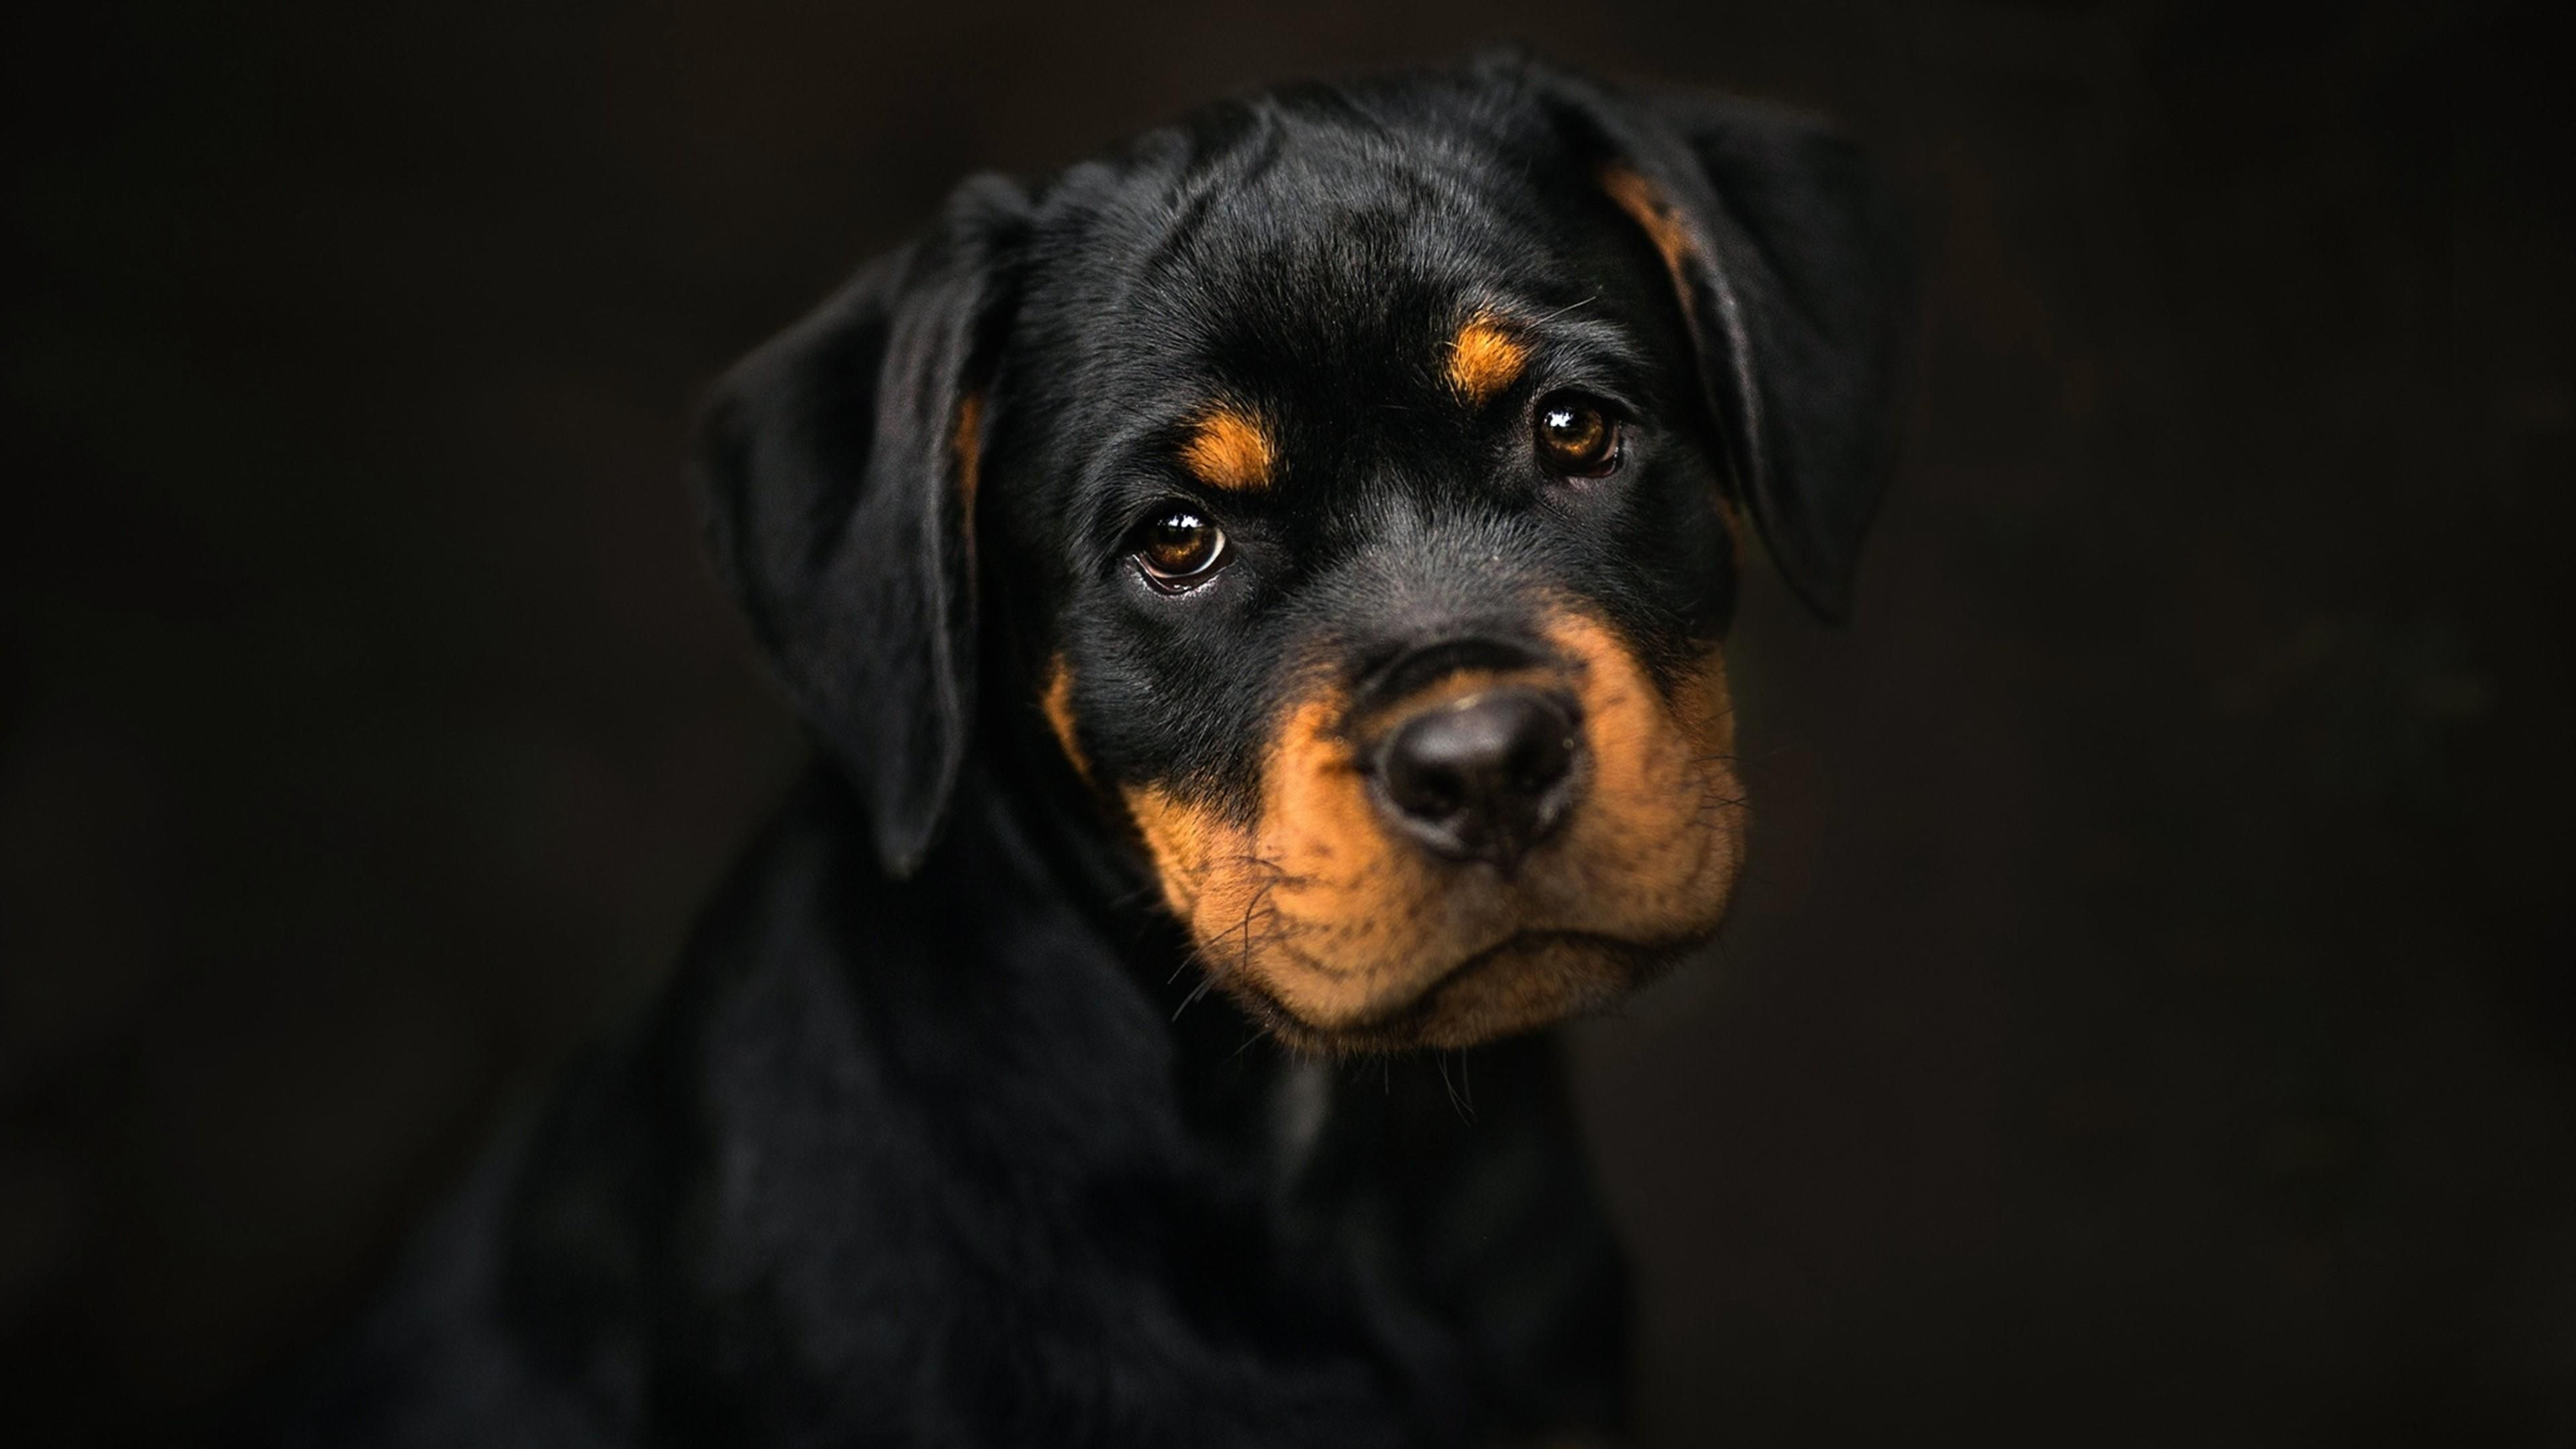 Cute Dog Wallpapers Desktop Mobile 44 Rottweiler Puppies Cute Dog Wallpaper Rottweiler